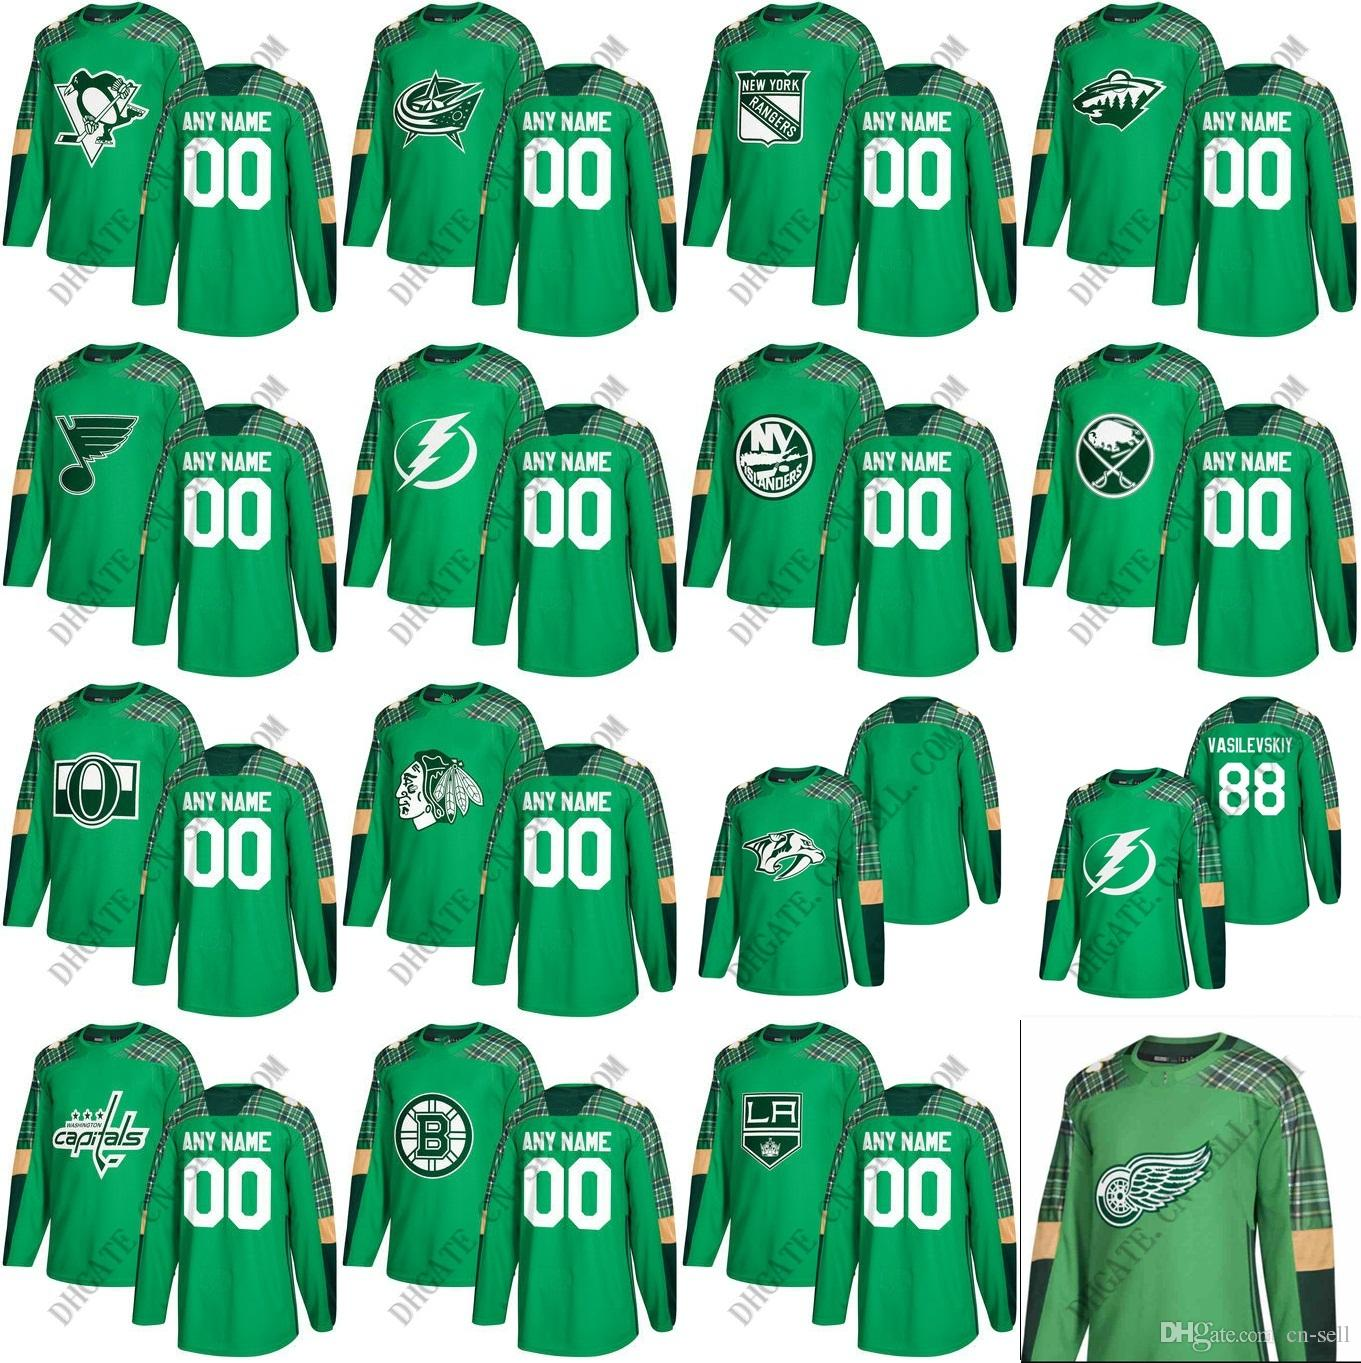 2018 St. Patrick s Day Hockey Jersey Goalie Cut Any Name   NO. Own Design  Chicago-Blackhawks Pittsburgh Flyers Leafs Capitals RANGERS WILD Wholesale  Hockey ... d913c5eb0